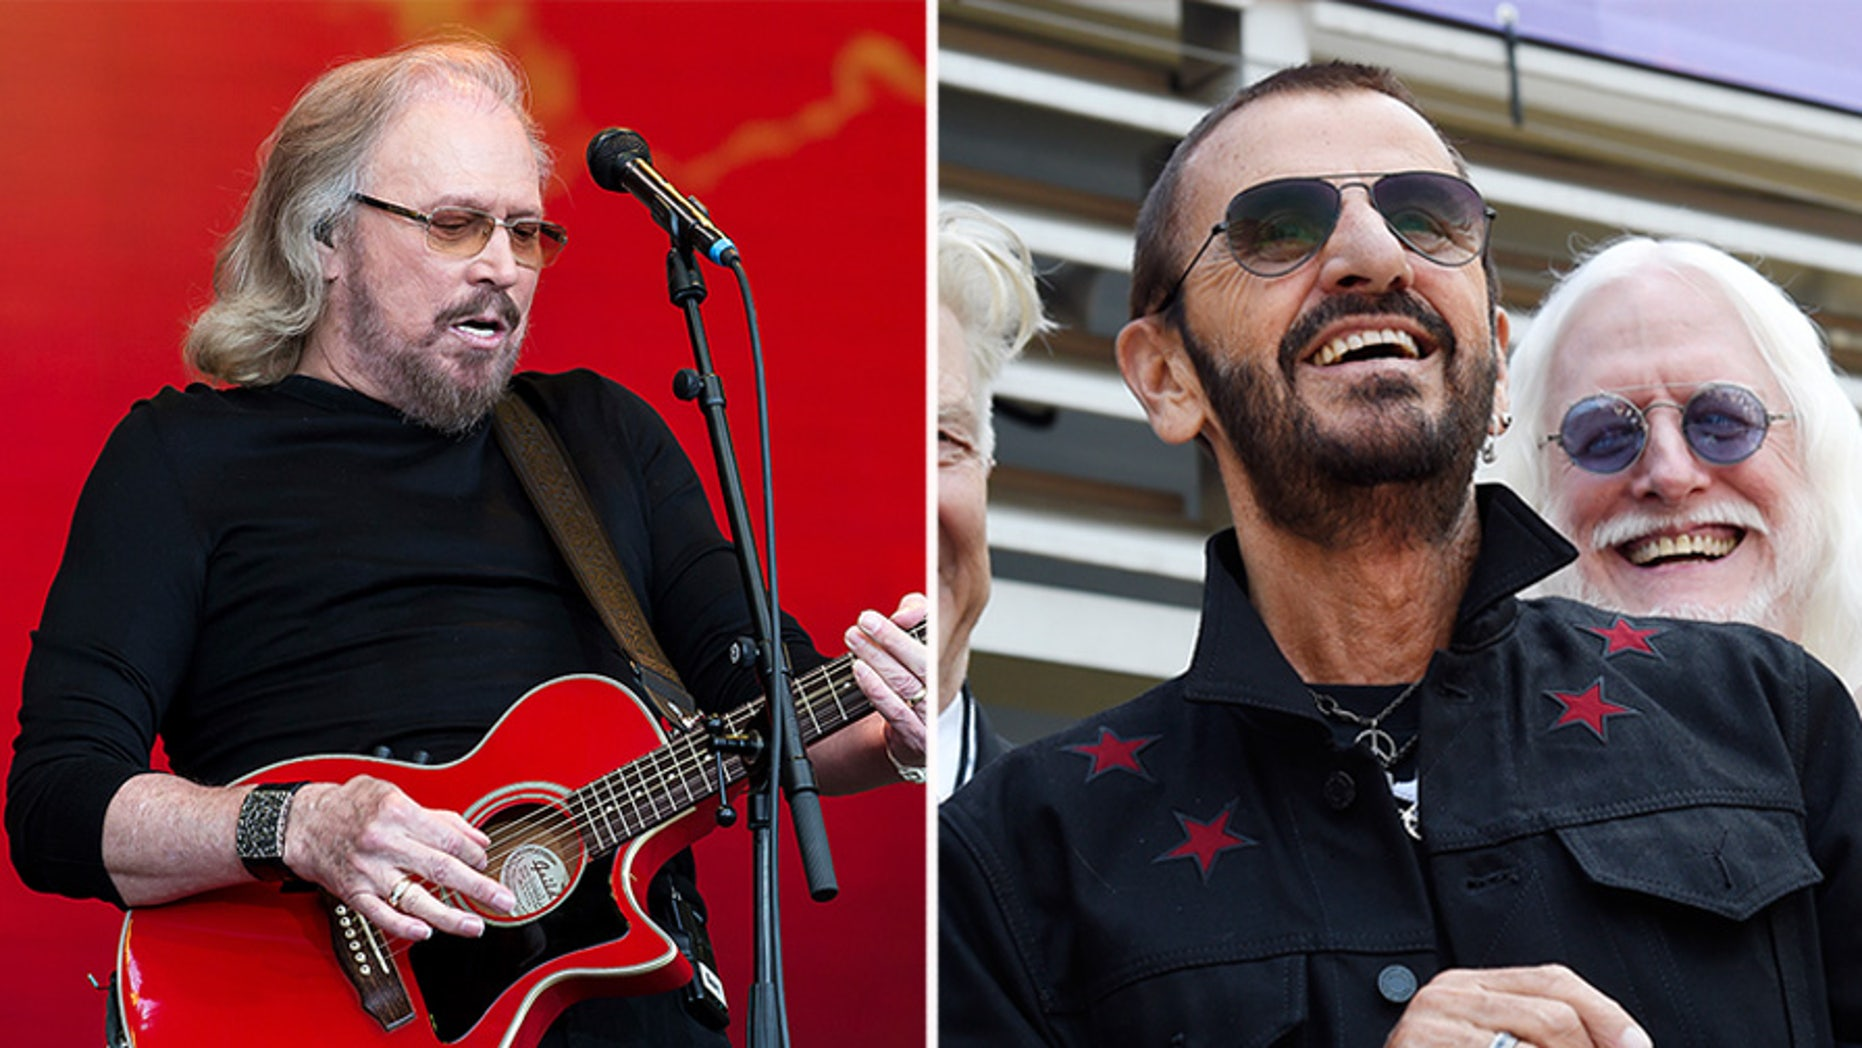 Beatles drummer Ringo Starr and Bee Gees singer Barry Gibb are among four British citizens who have been knighted by Queen Elizabeth as part of her New Year's Honors List.